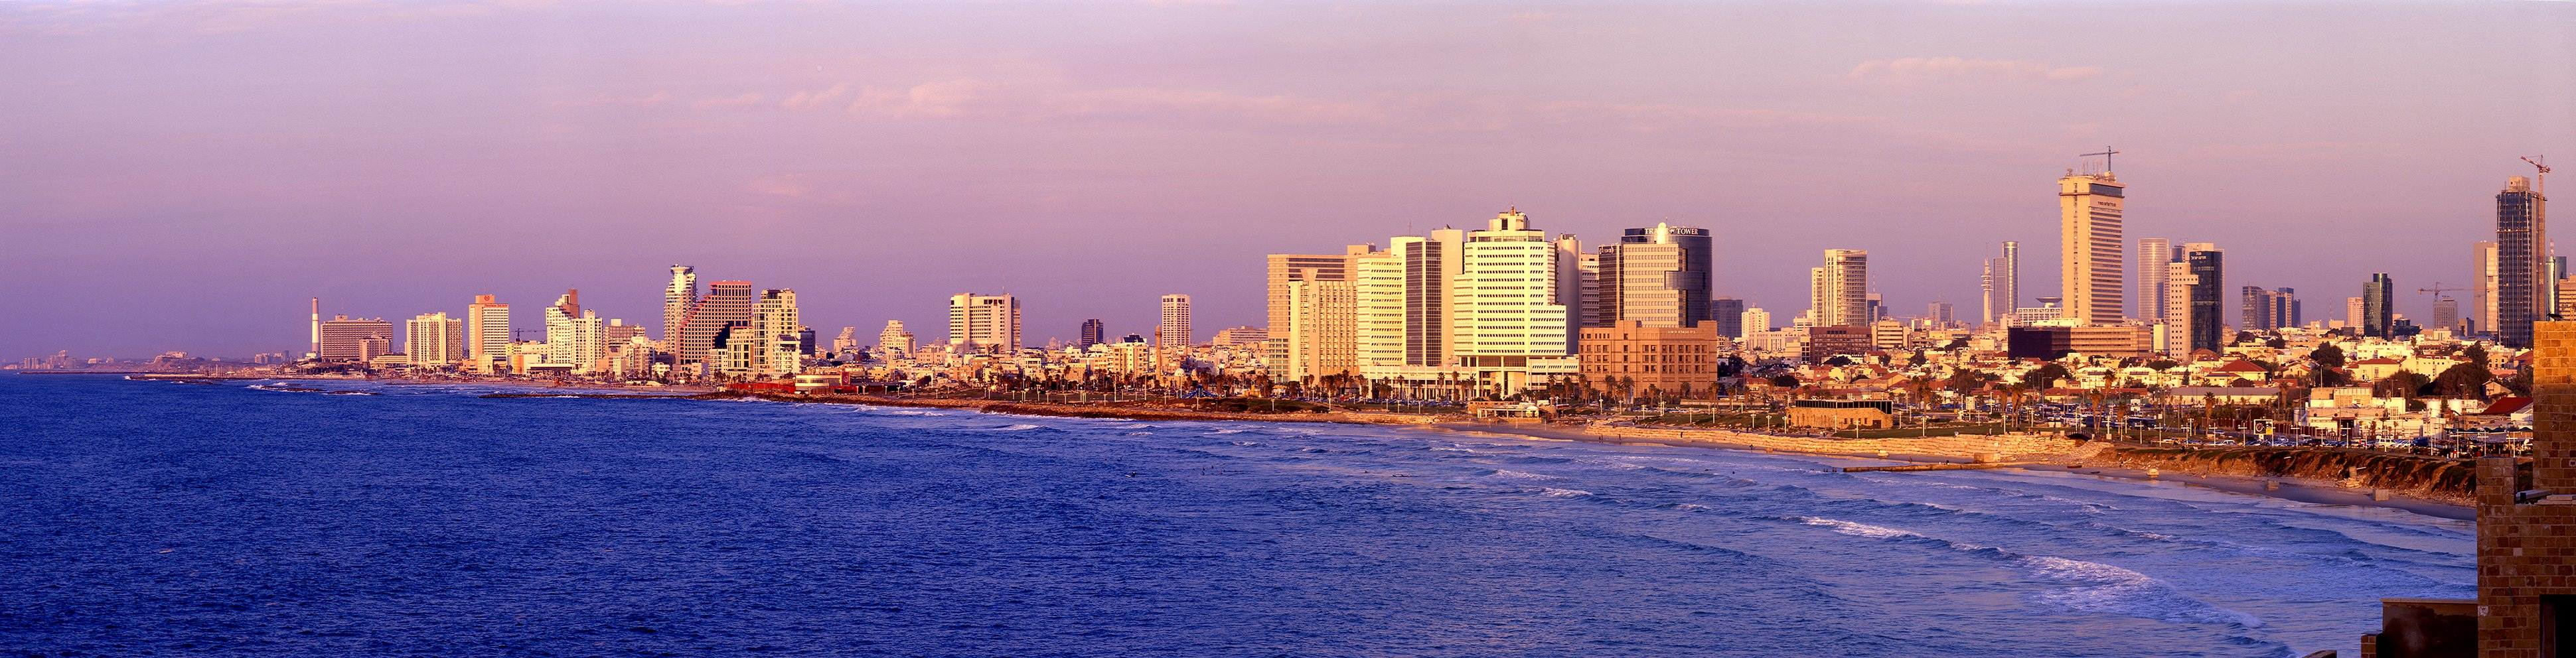 Tel Aviv cityscape and shoreline